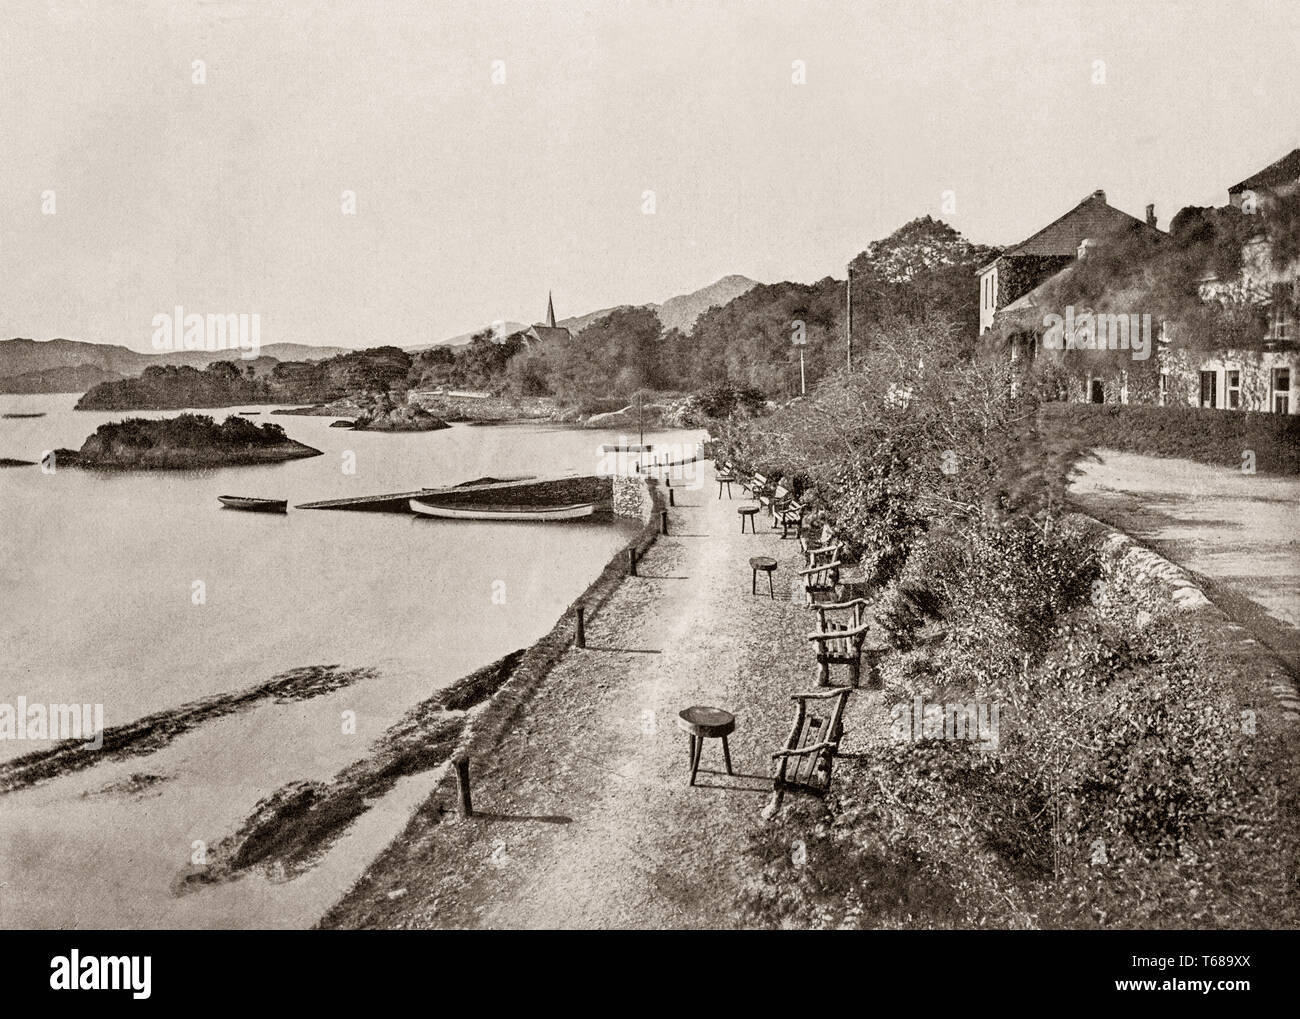 19th Century view of the Esplanade in Glengarriff, a village in the Beara Peninsula of County Cork, Ireland. Known internationally as a tourism venue, it boasts many natural attractions. It sits at the northern head of Glengarriff Bay, a smaller enclave of Bantry Bay. - Stock Image